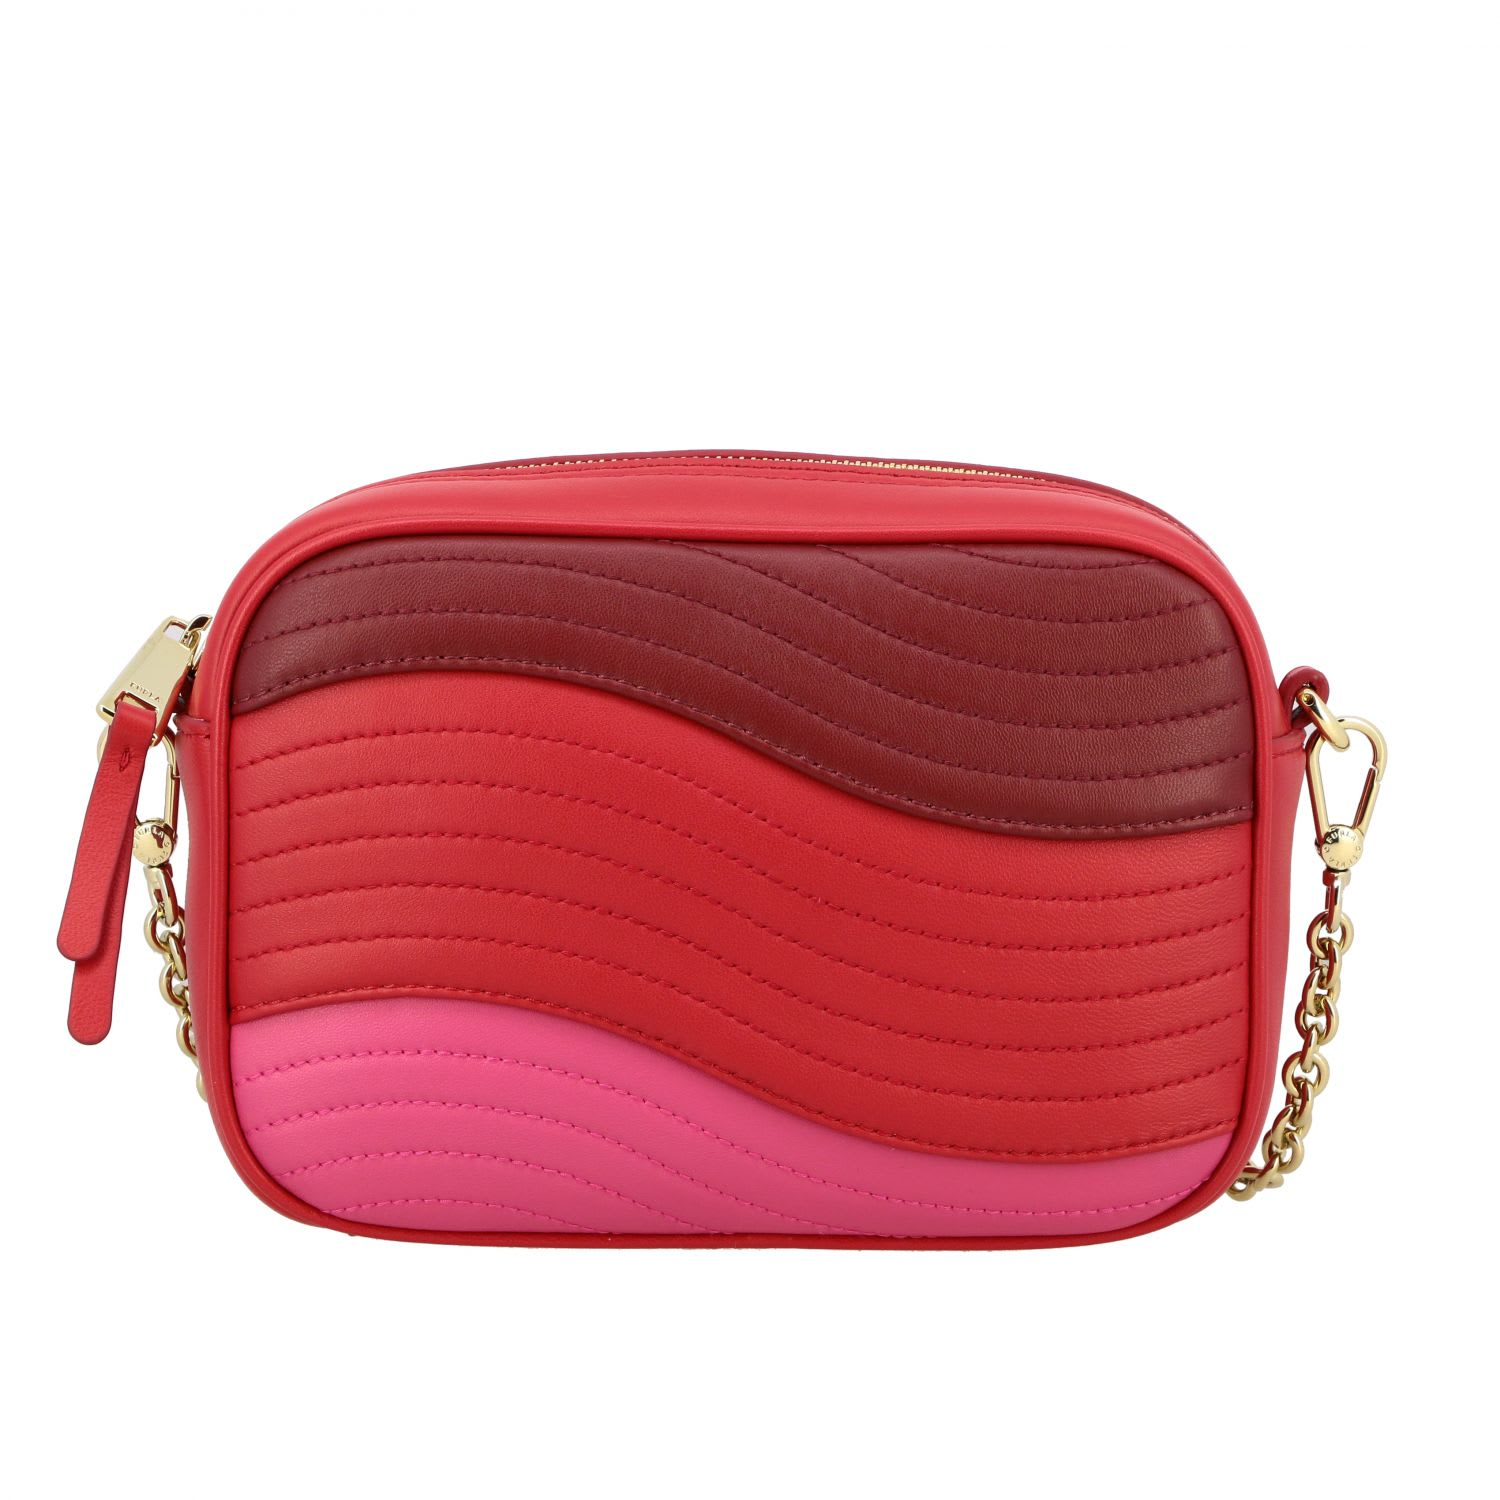 Furla Crossbody Bags Furla Shoulder Bag In Wave-like Quilted Leather